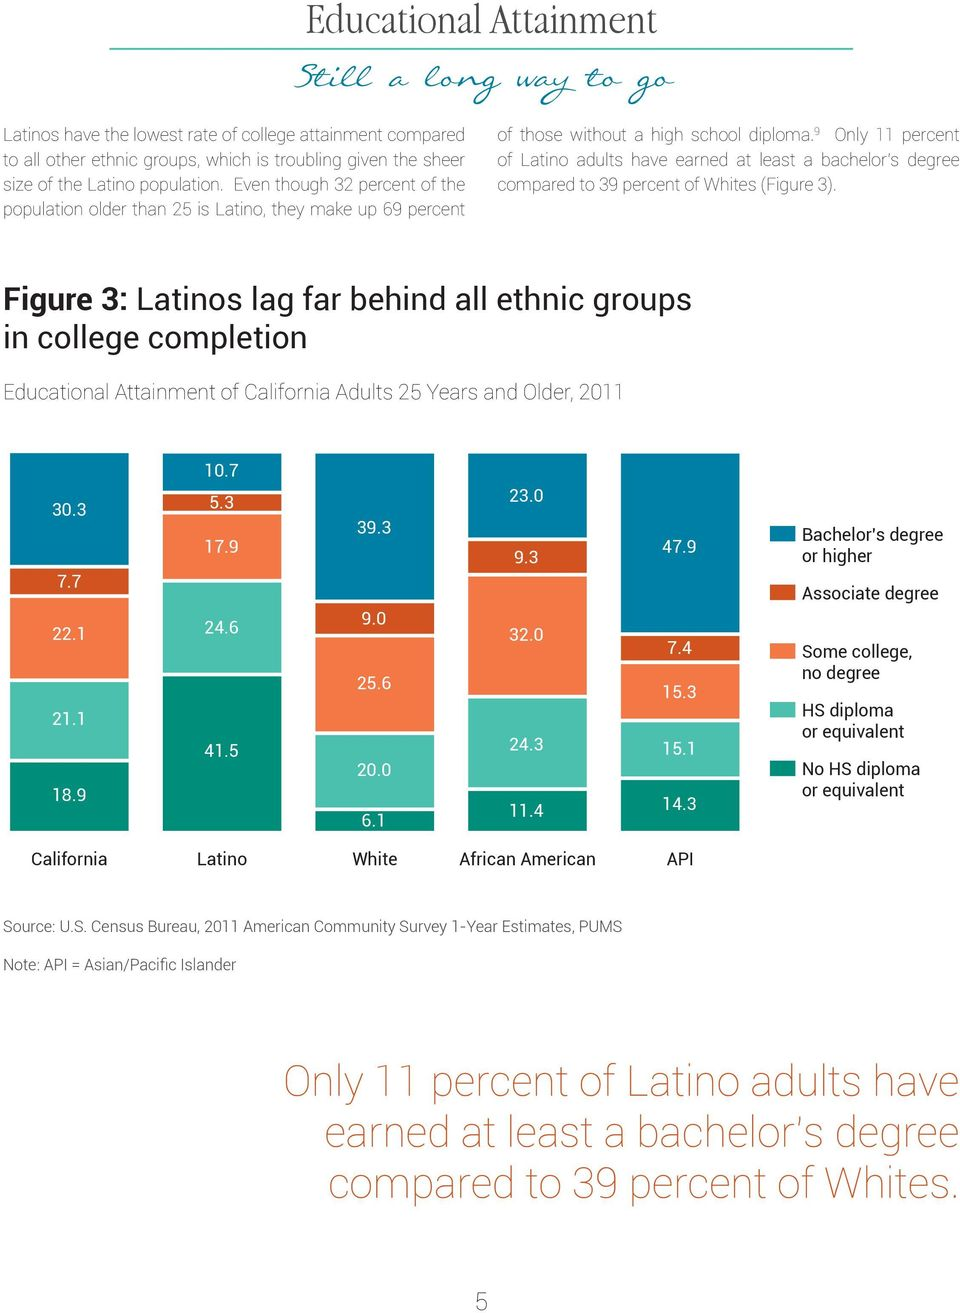 9 Only 11 percent of Latino adults have earned at least a bachelor s degree compared to 39 percent of Whites (Figure 3).